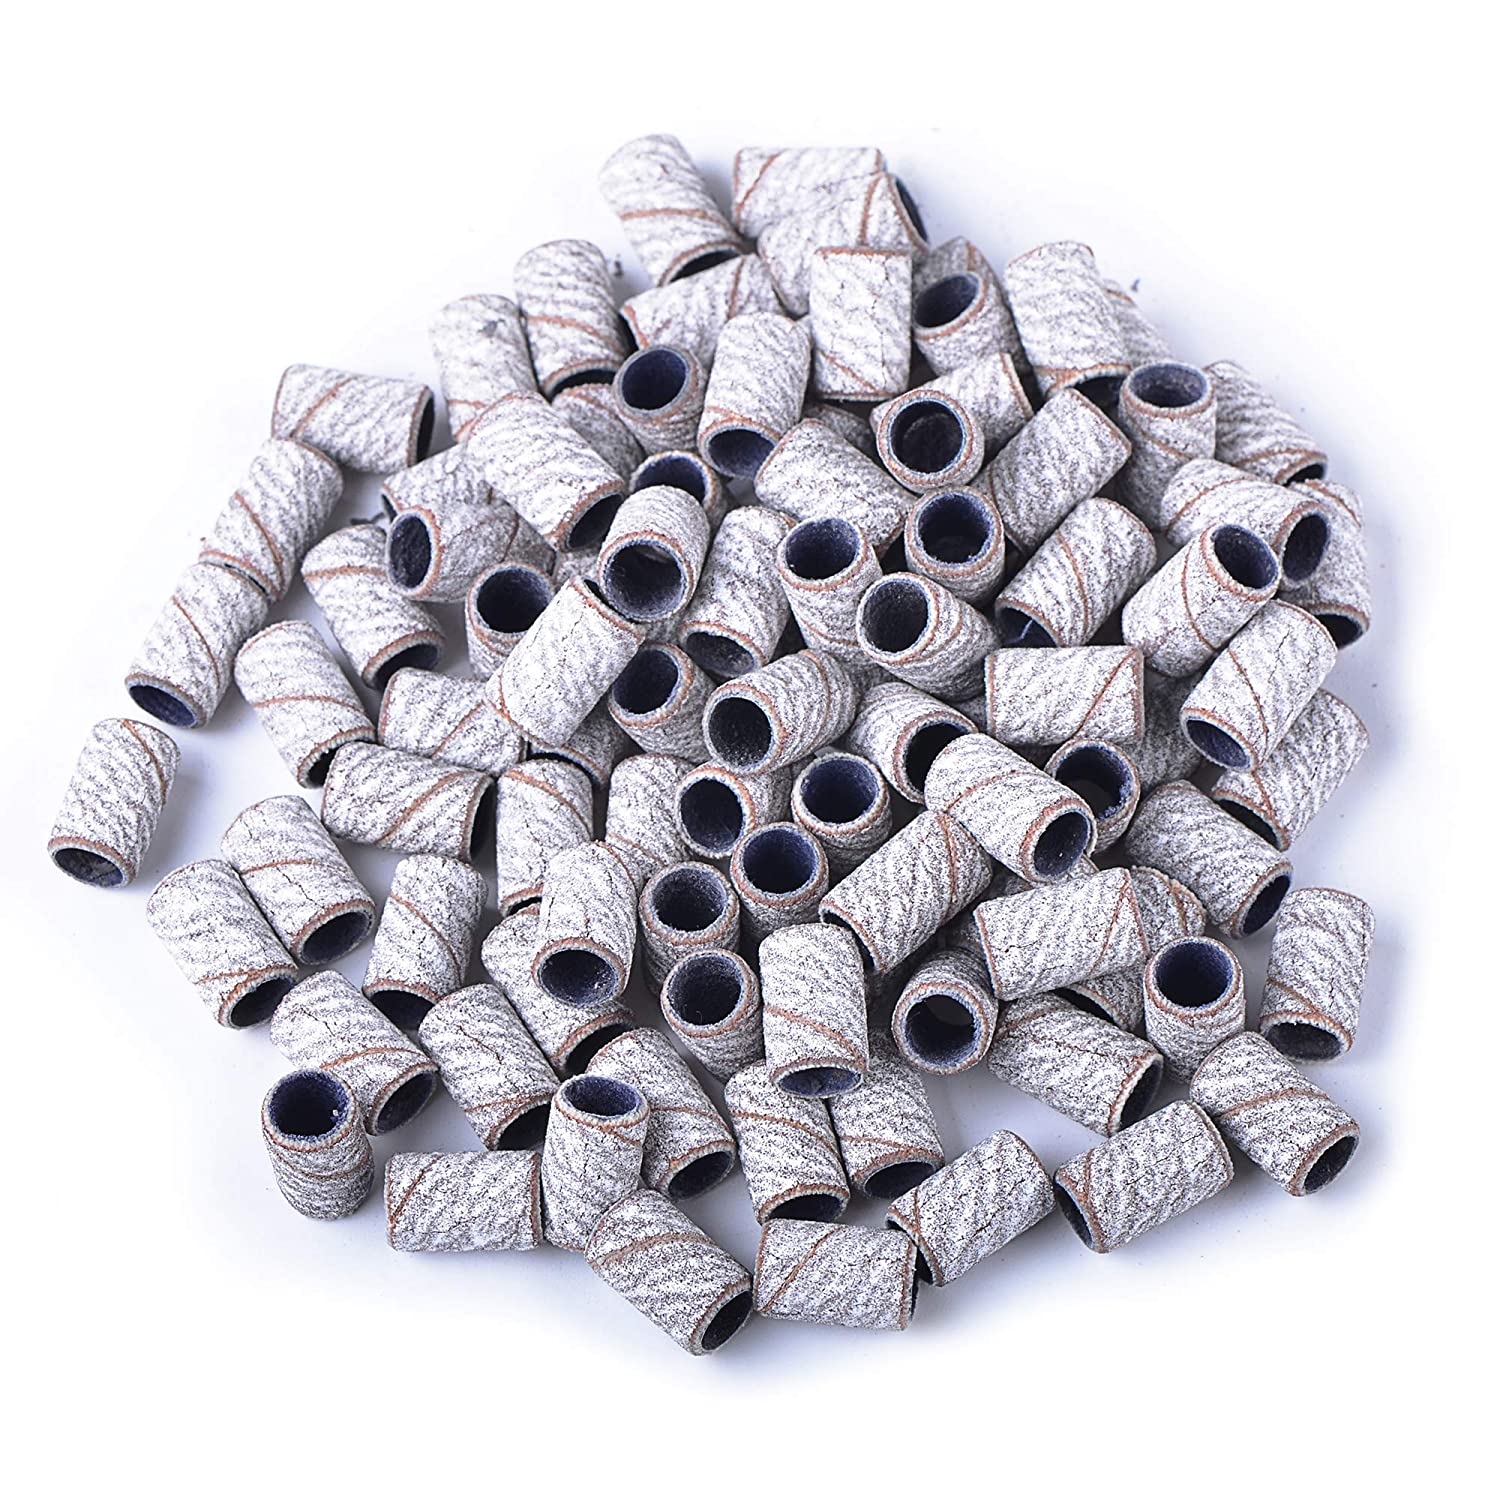 Spetool 100pcs Sanding Ring Bands 150 Grinding Polisher For Nail Drill Files Manicure Tools Zebra Beauty Amazon Com